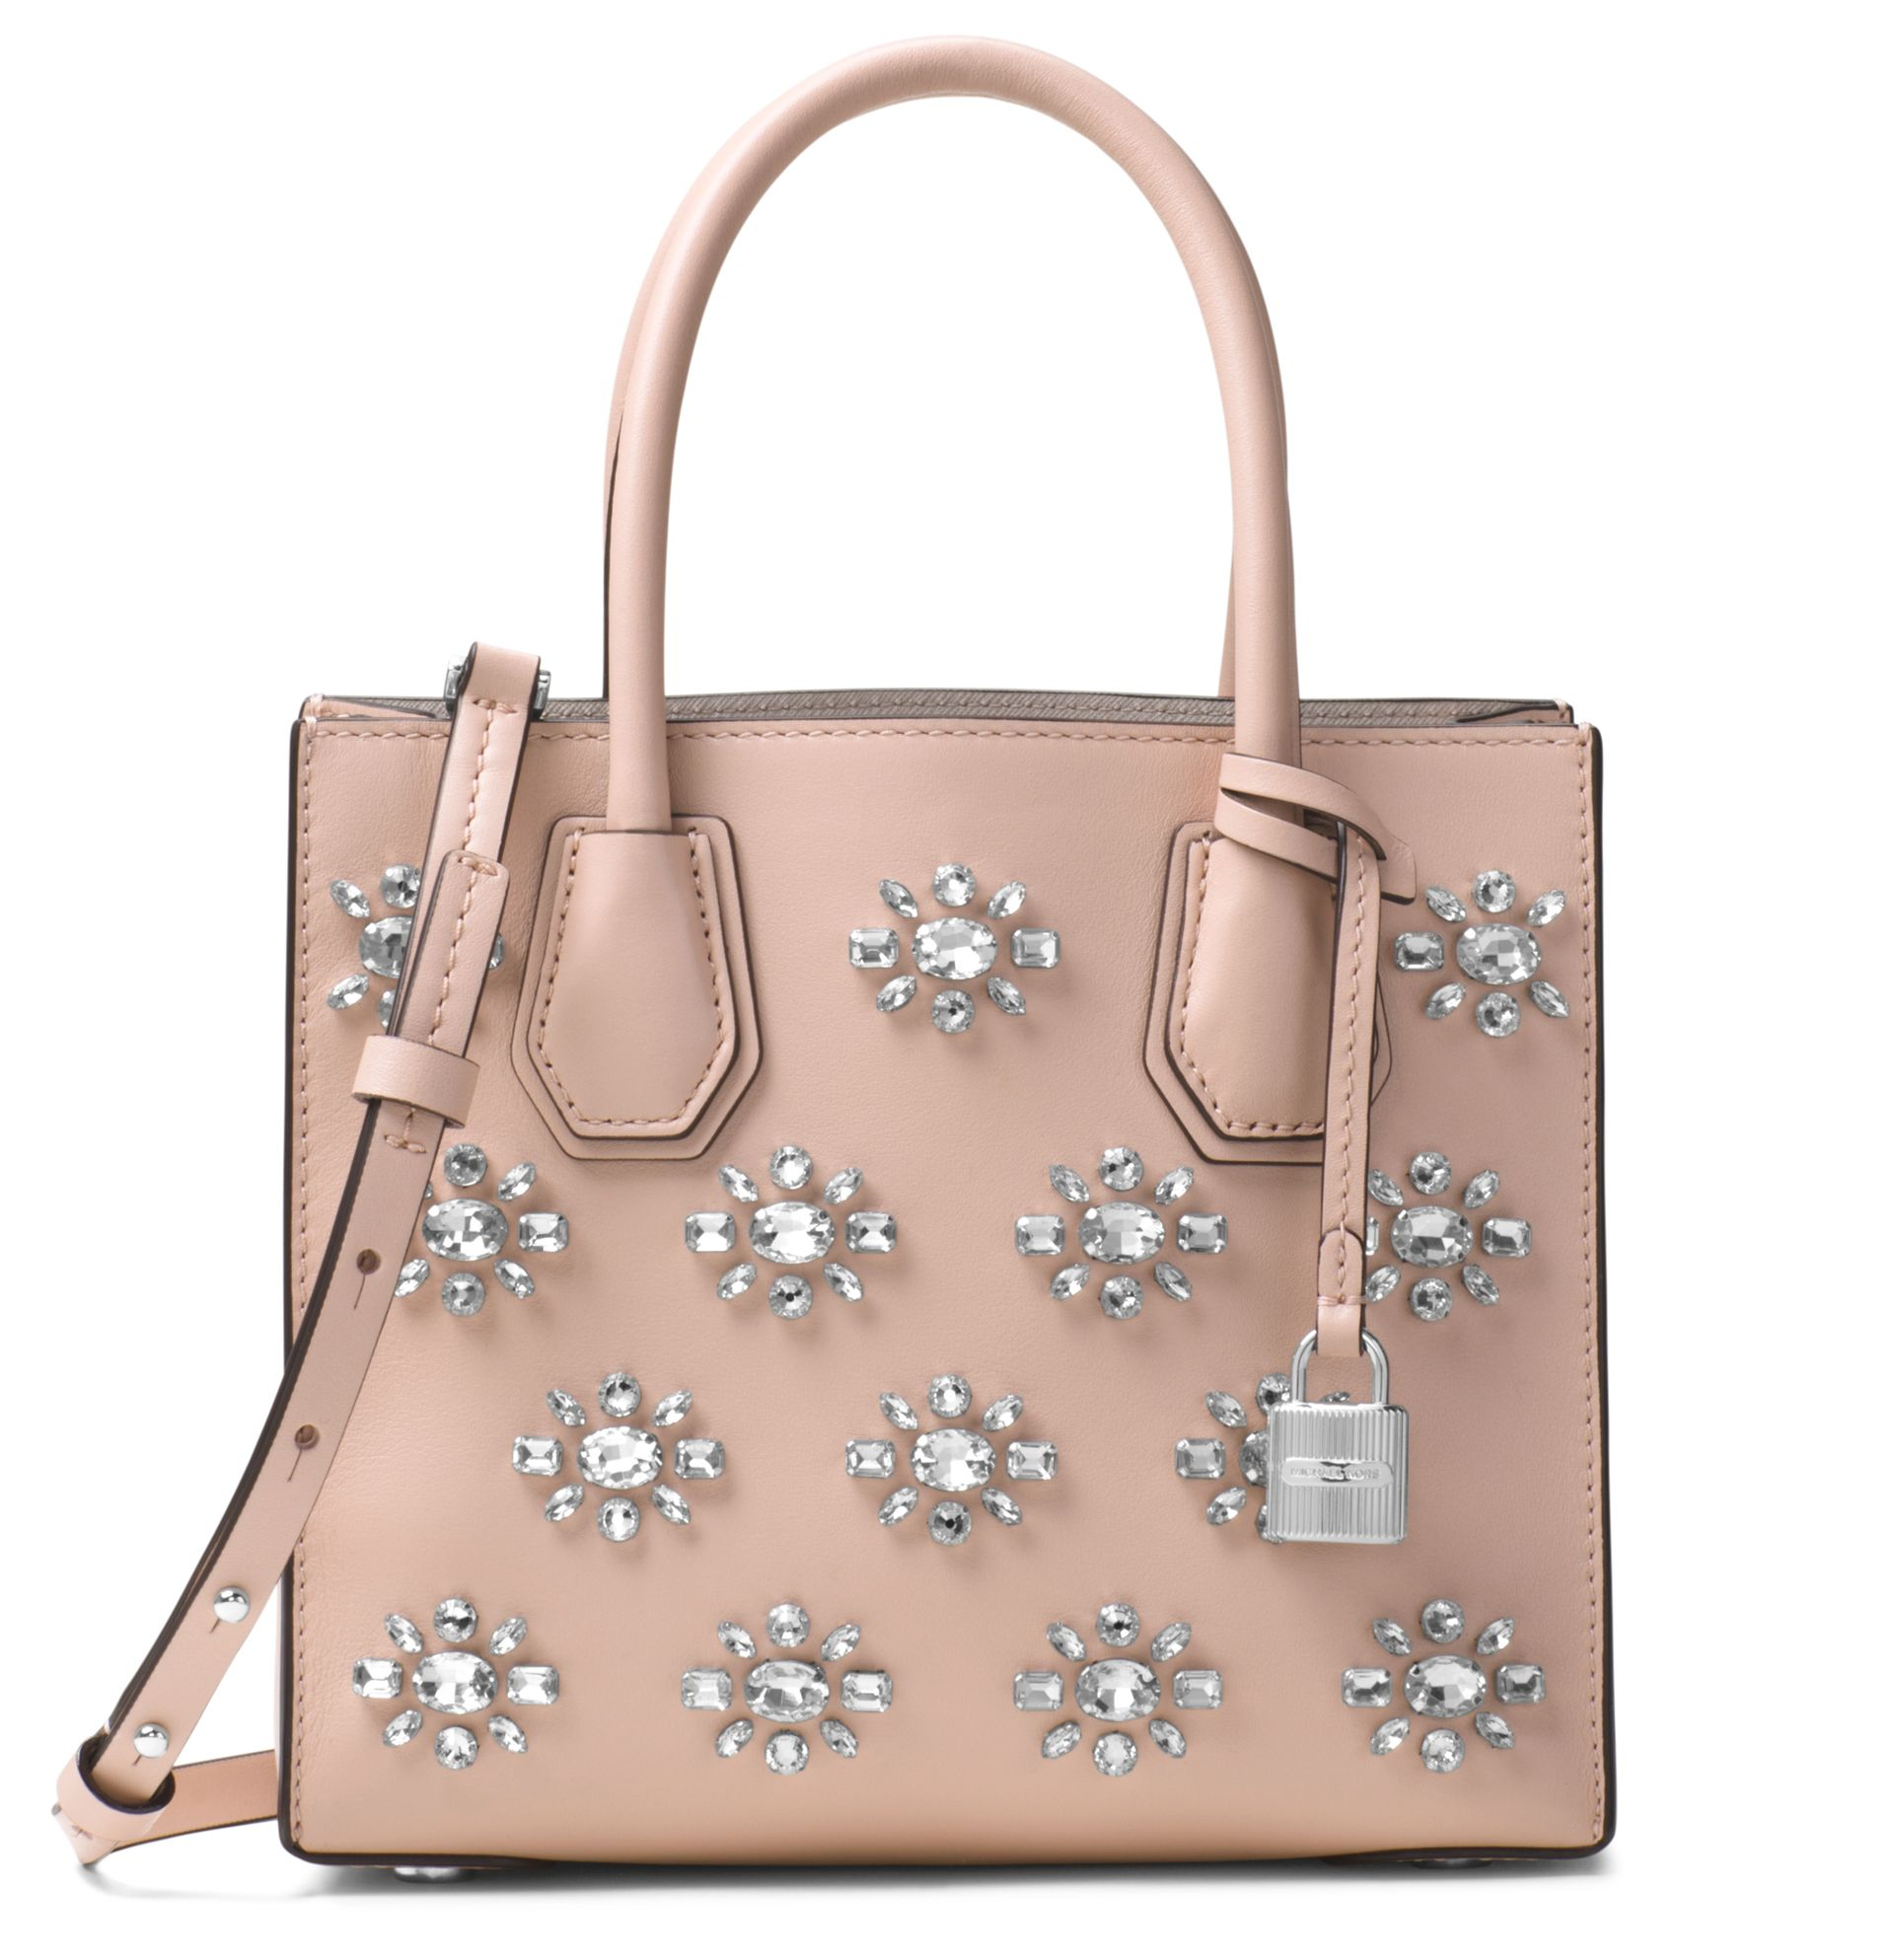 24a845d076de 9 Mother's Day Gift Ideas by Michael Kors | Philippine Tatler